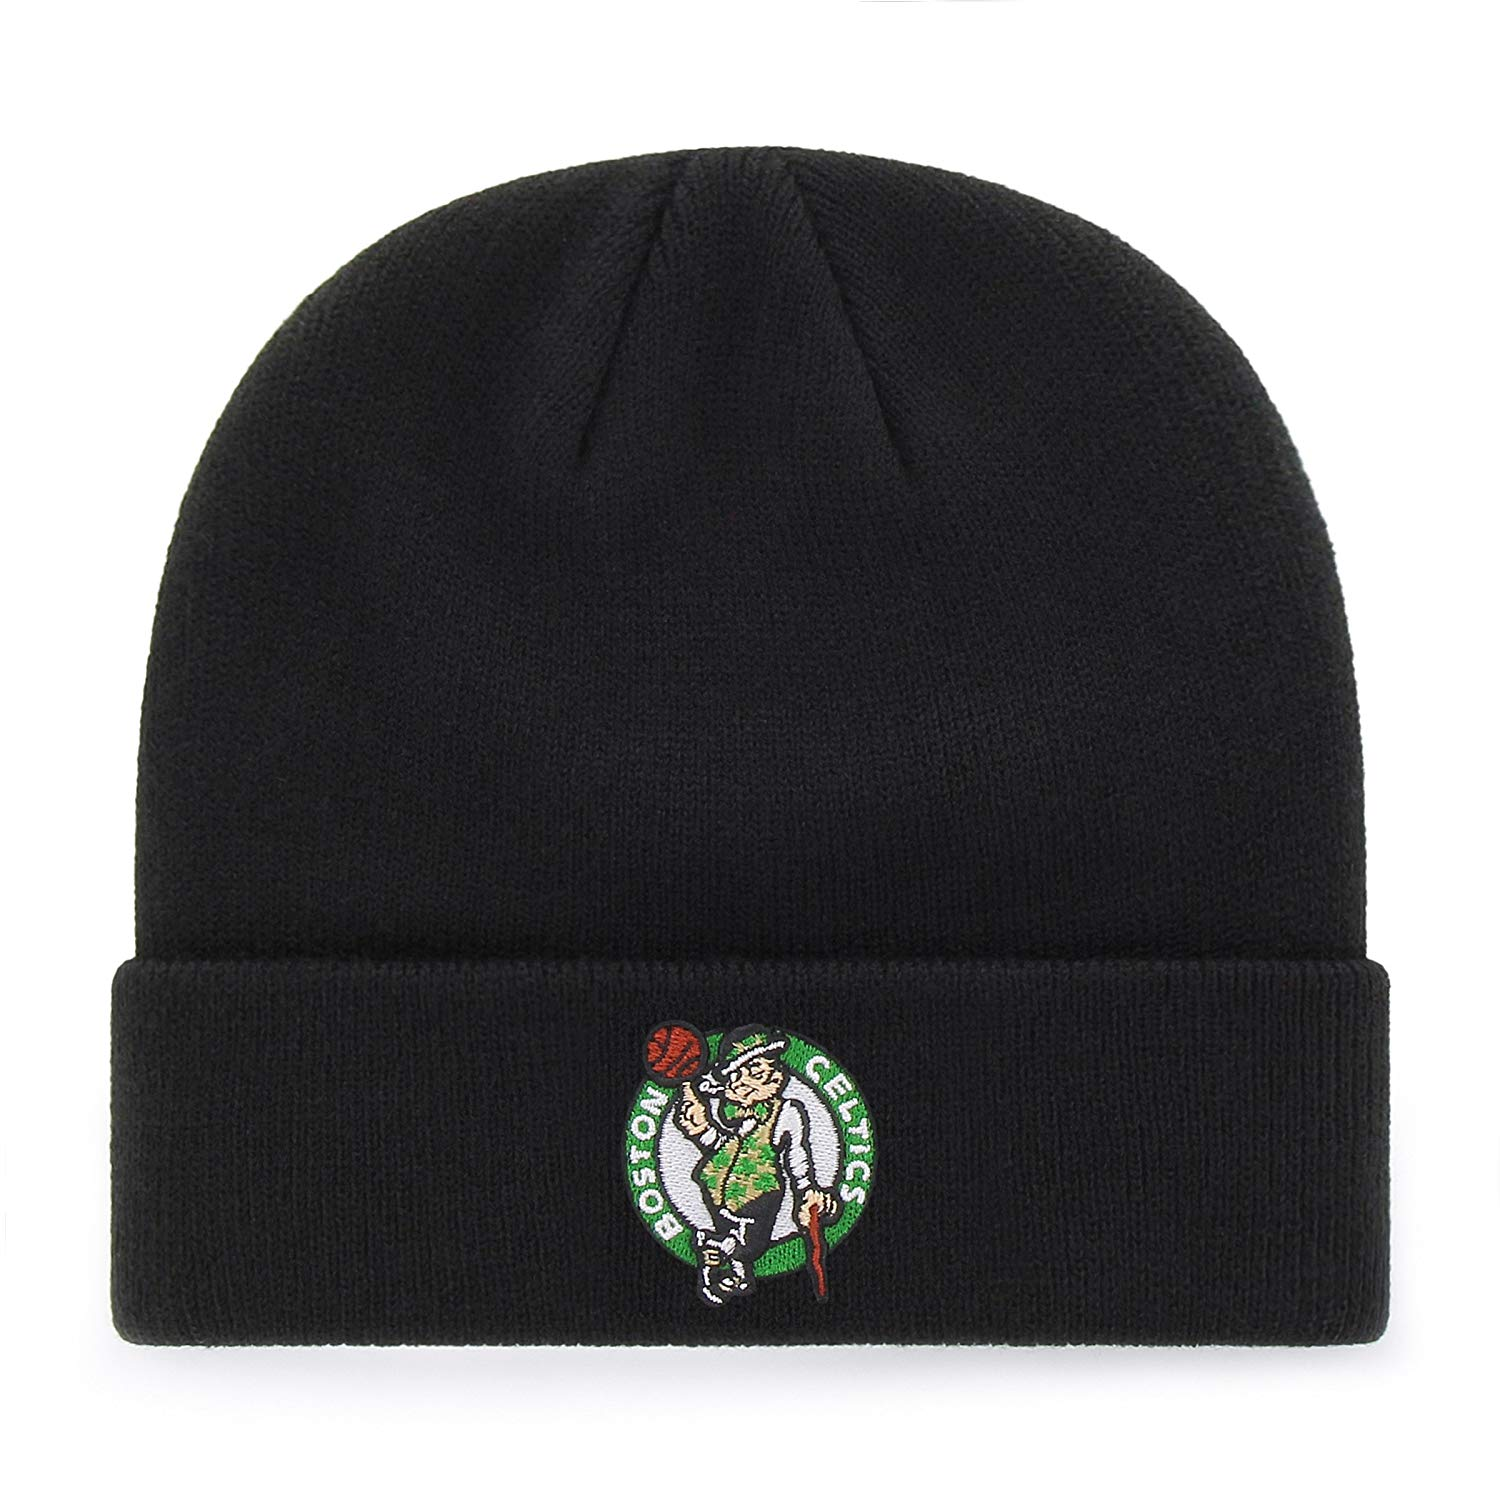 OTS NBA Adult Men's NBA Raised Cuff Knit Cap